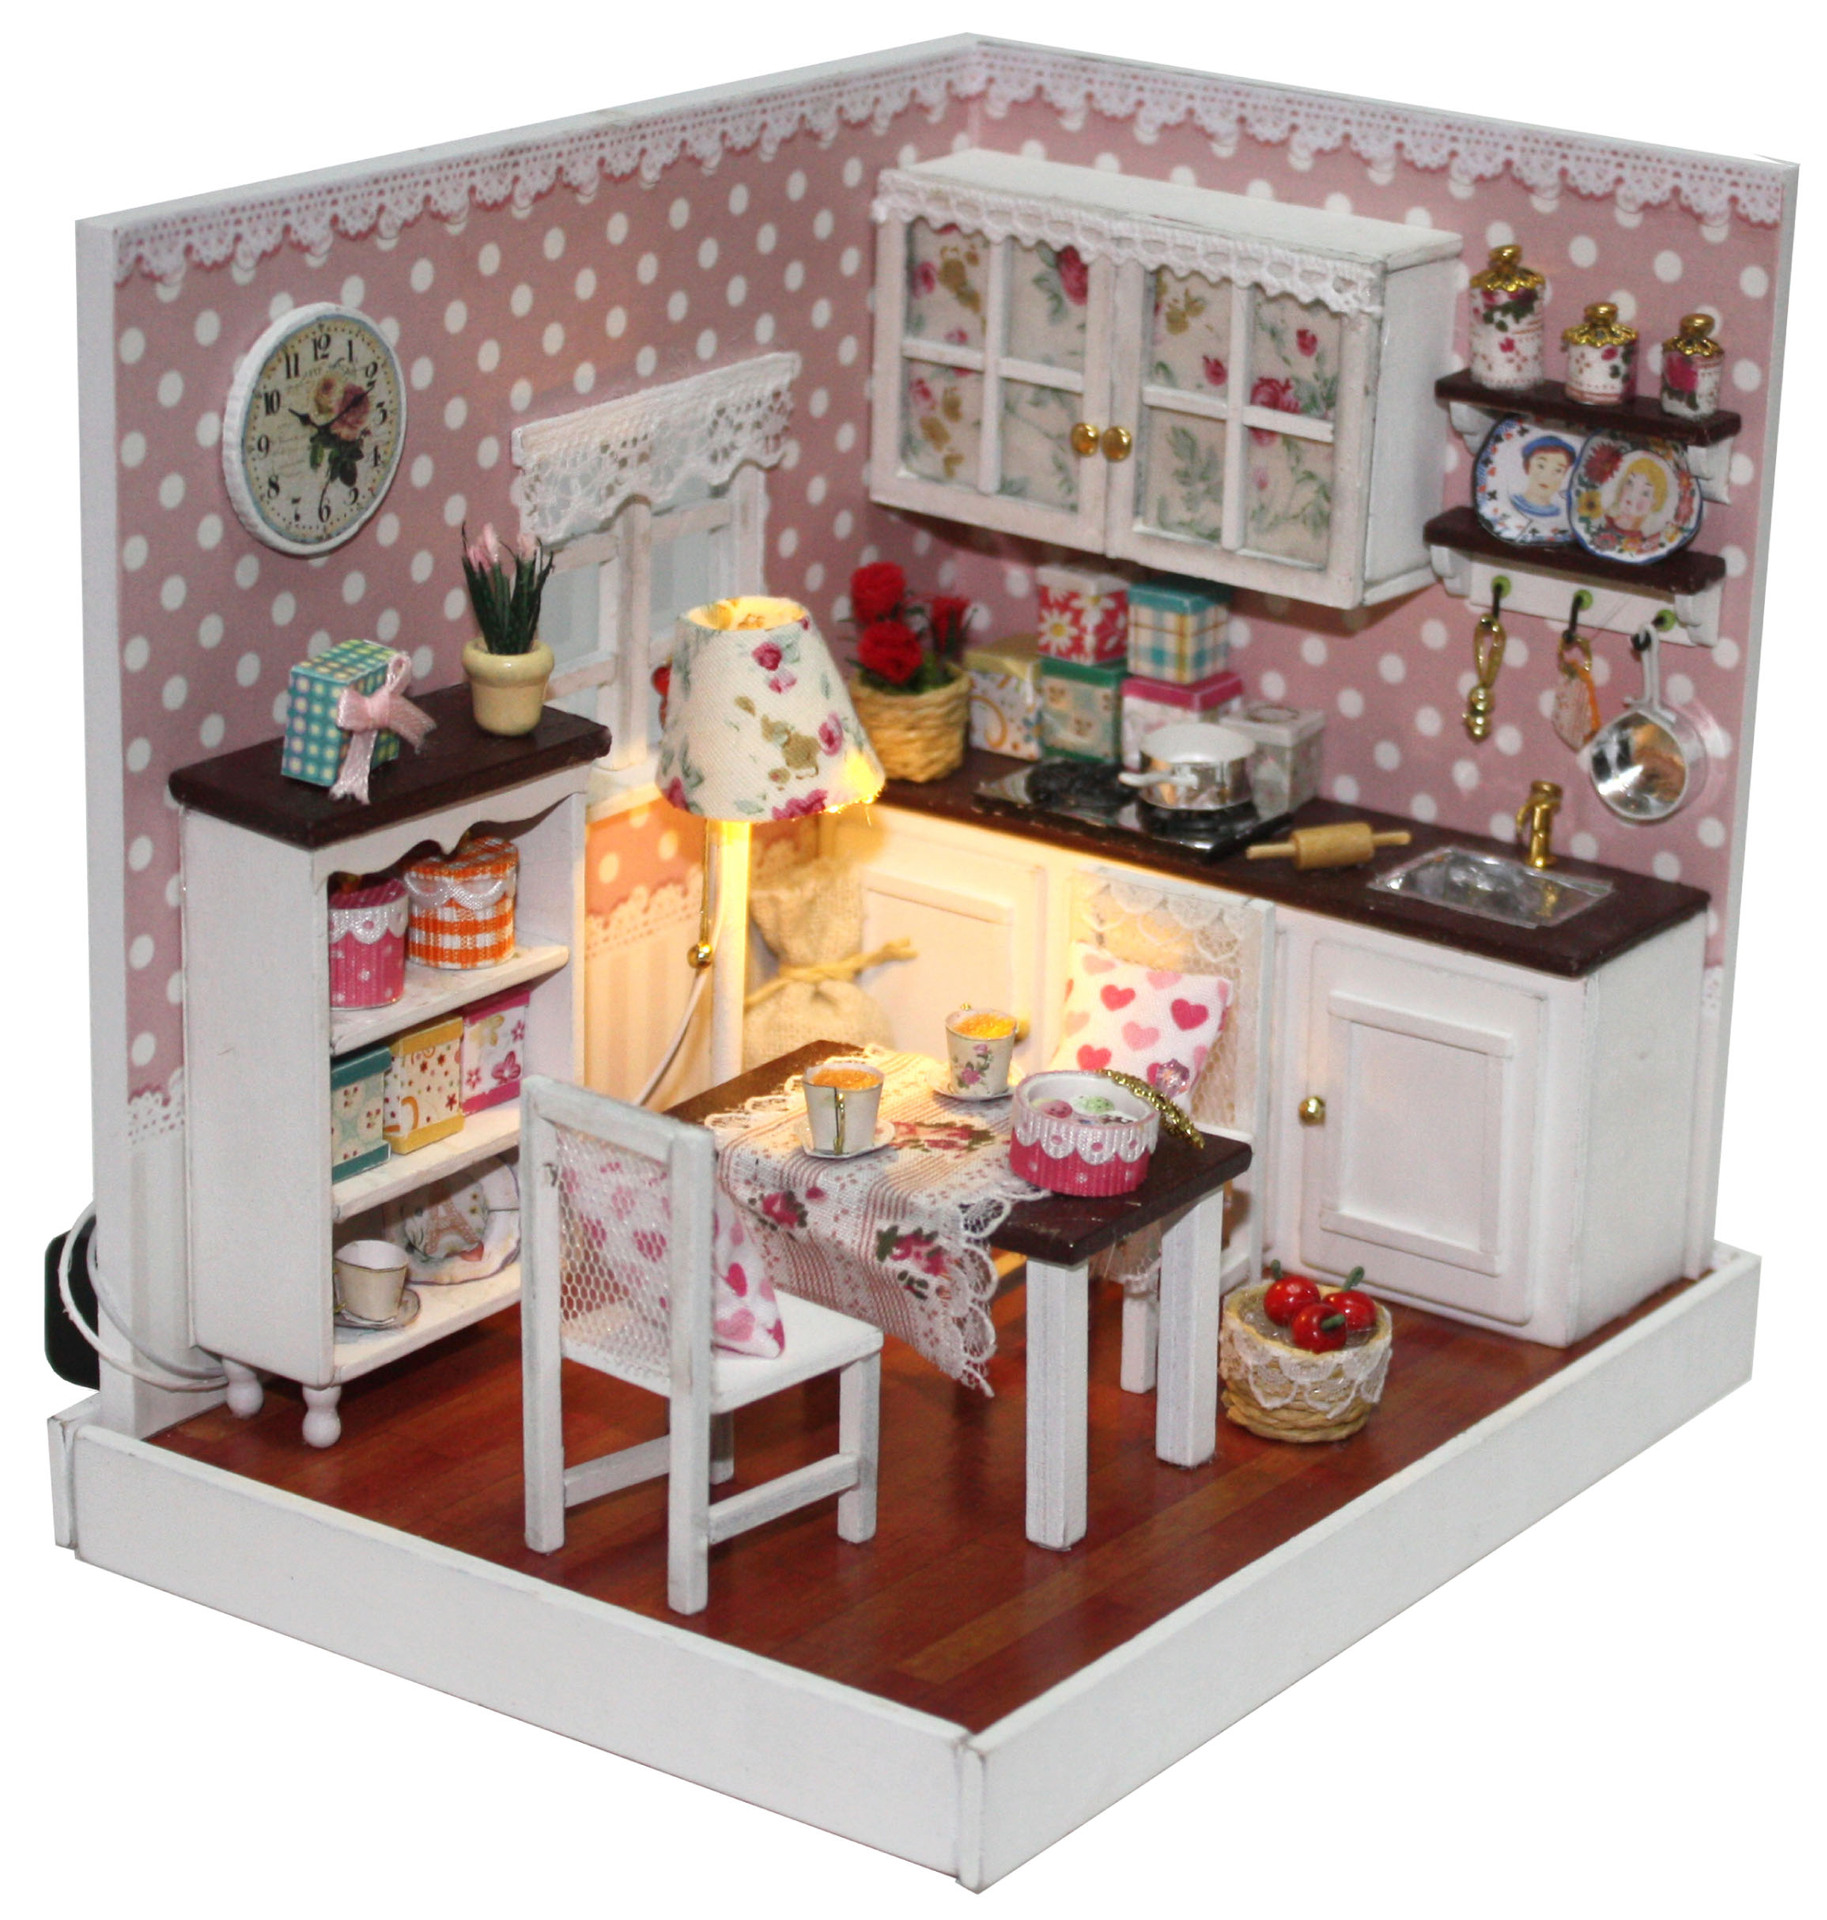 Dolls House Kitchen Furniture Compare Prices On Dolls House Kitchen Furniture Online Shopping